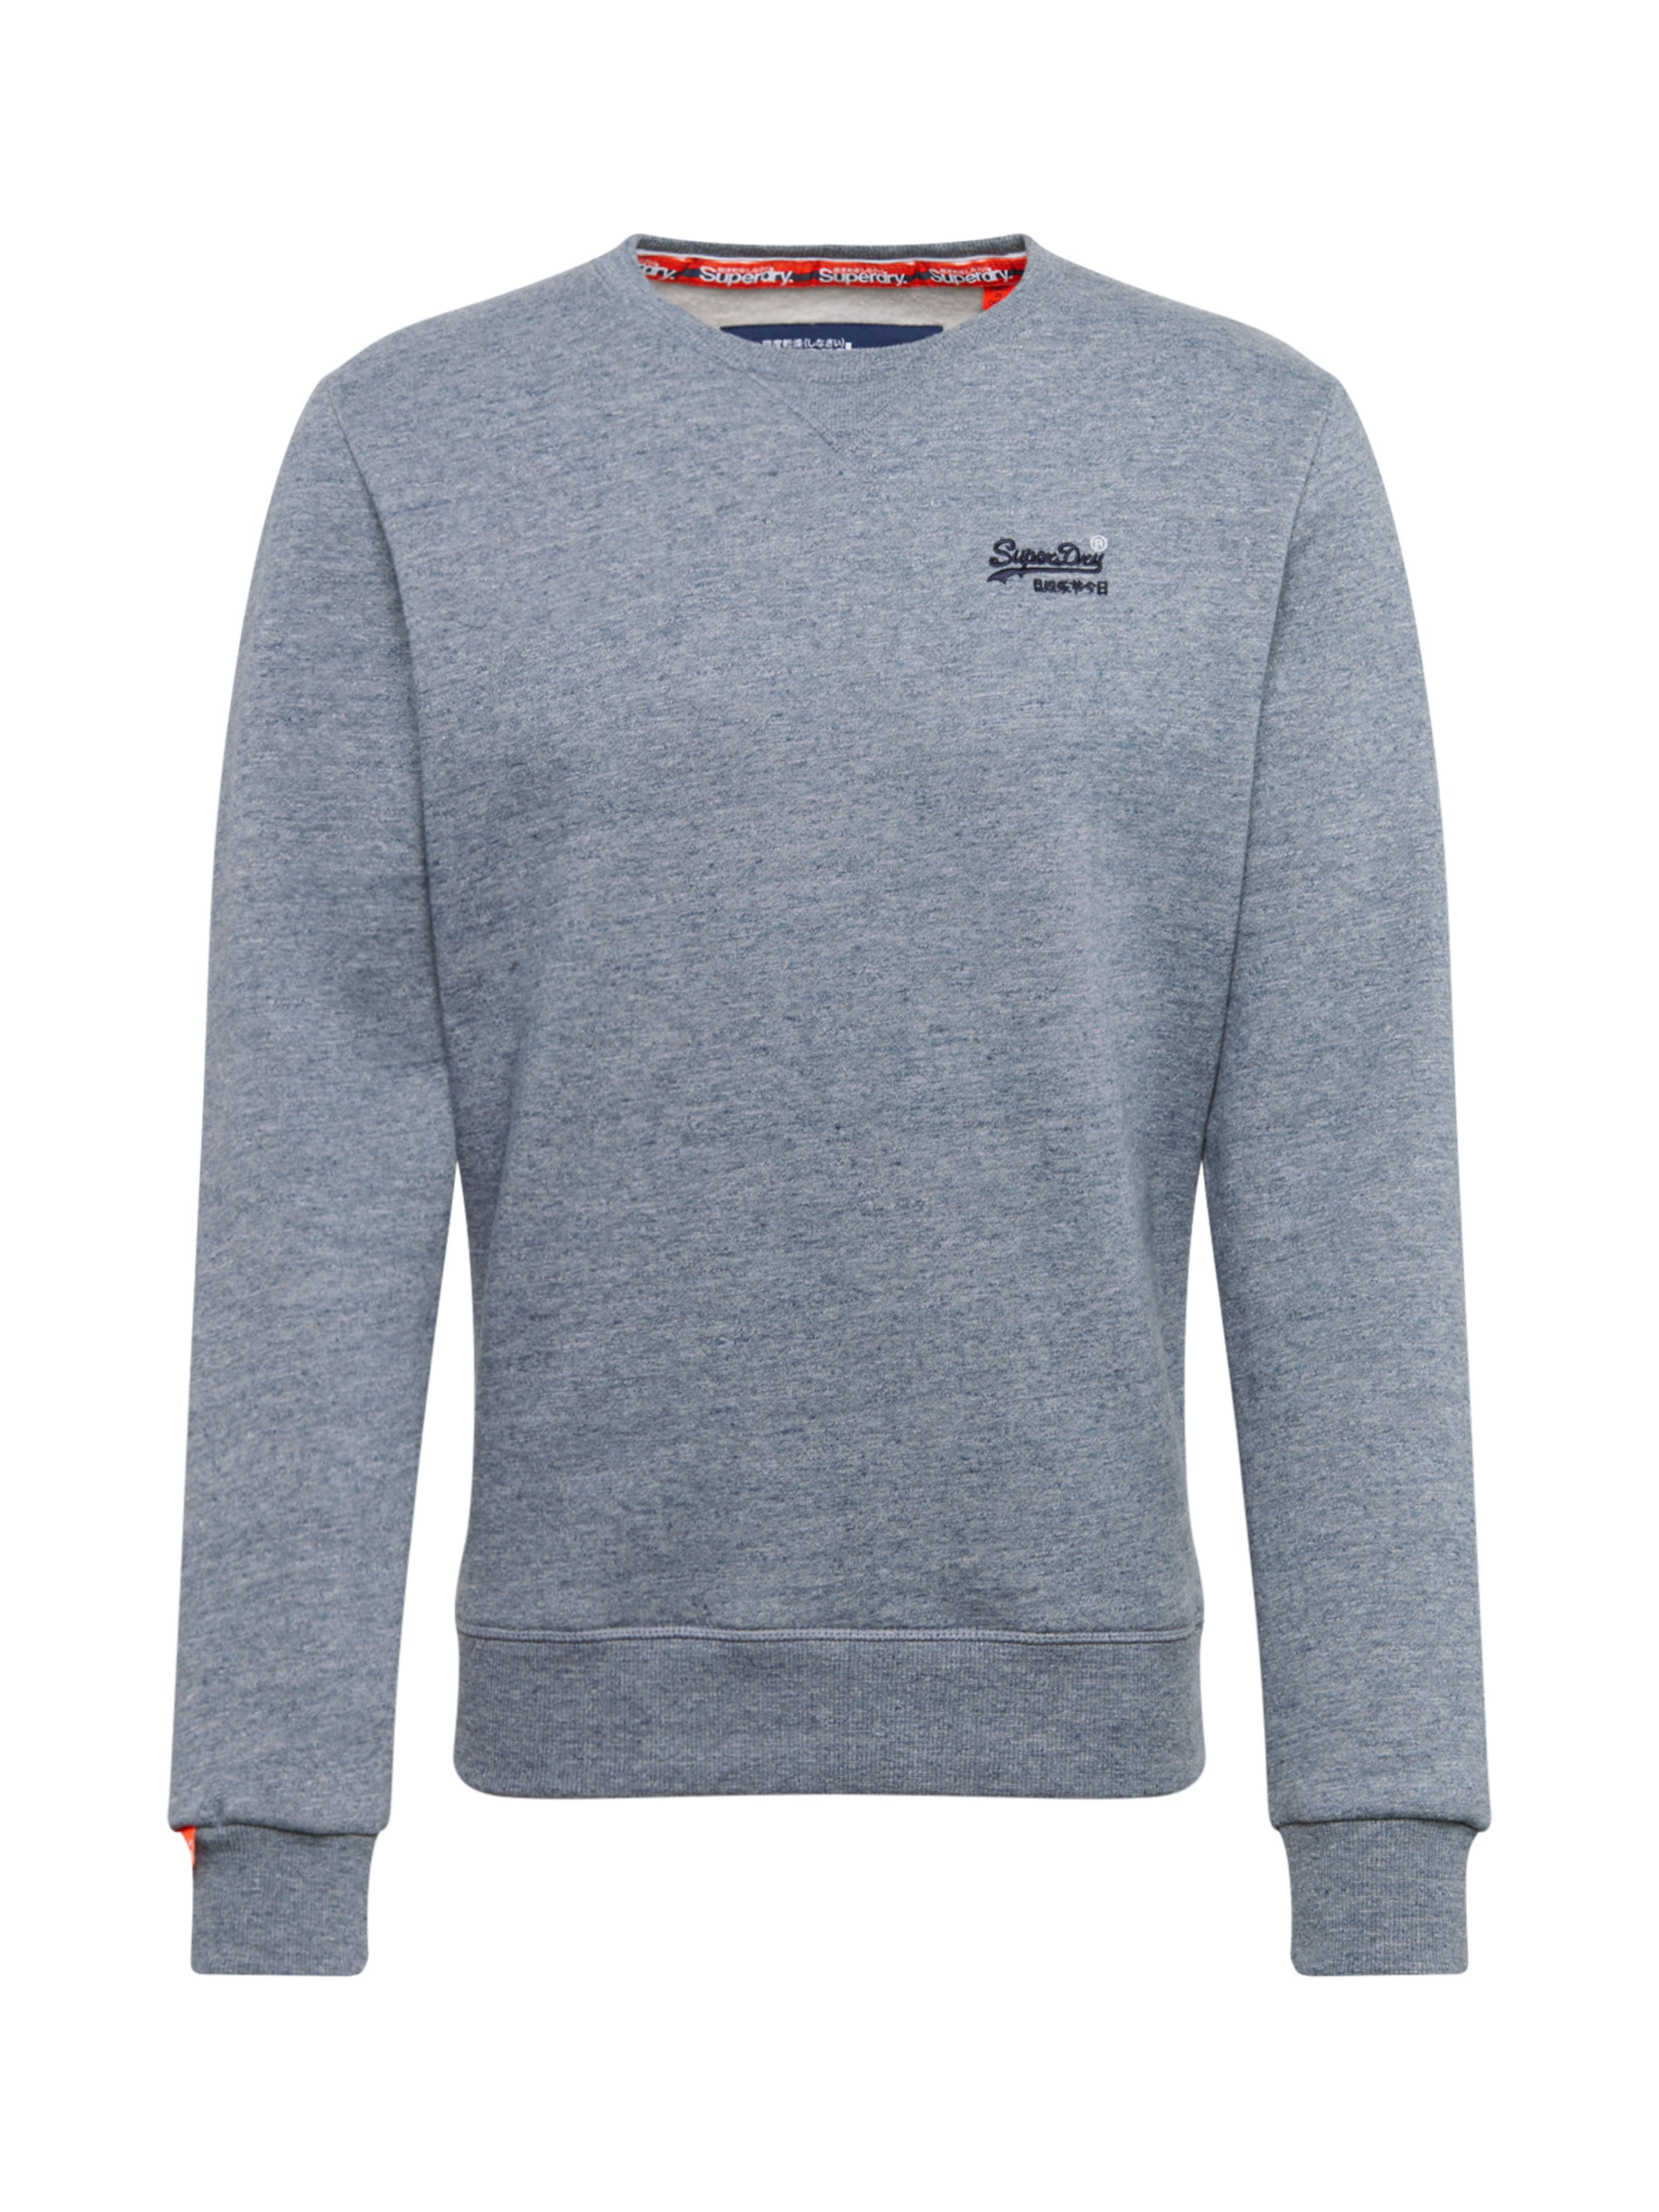 En Sweat Bleu Clair shirt Superdry 'orange' lKu1TFJ3c5